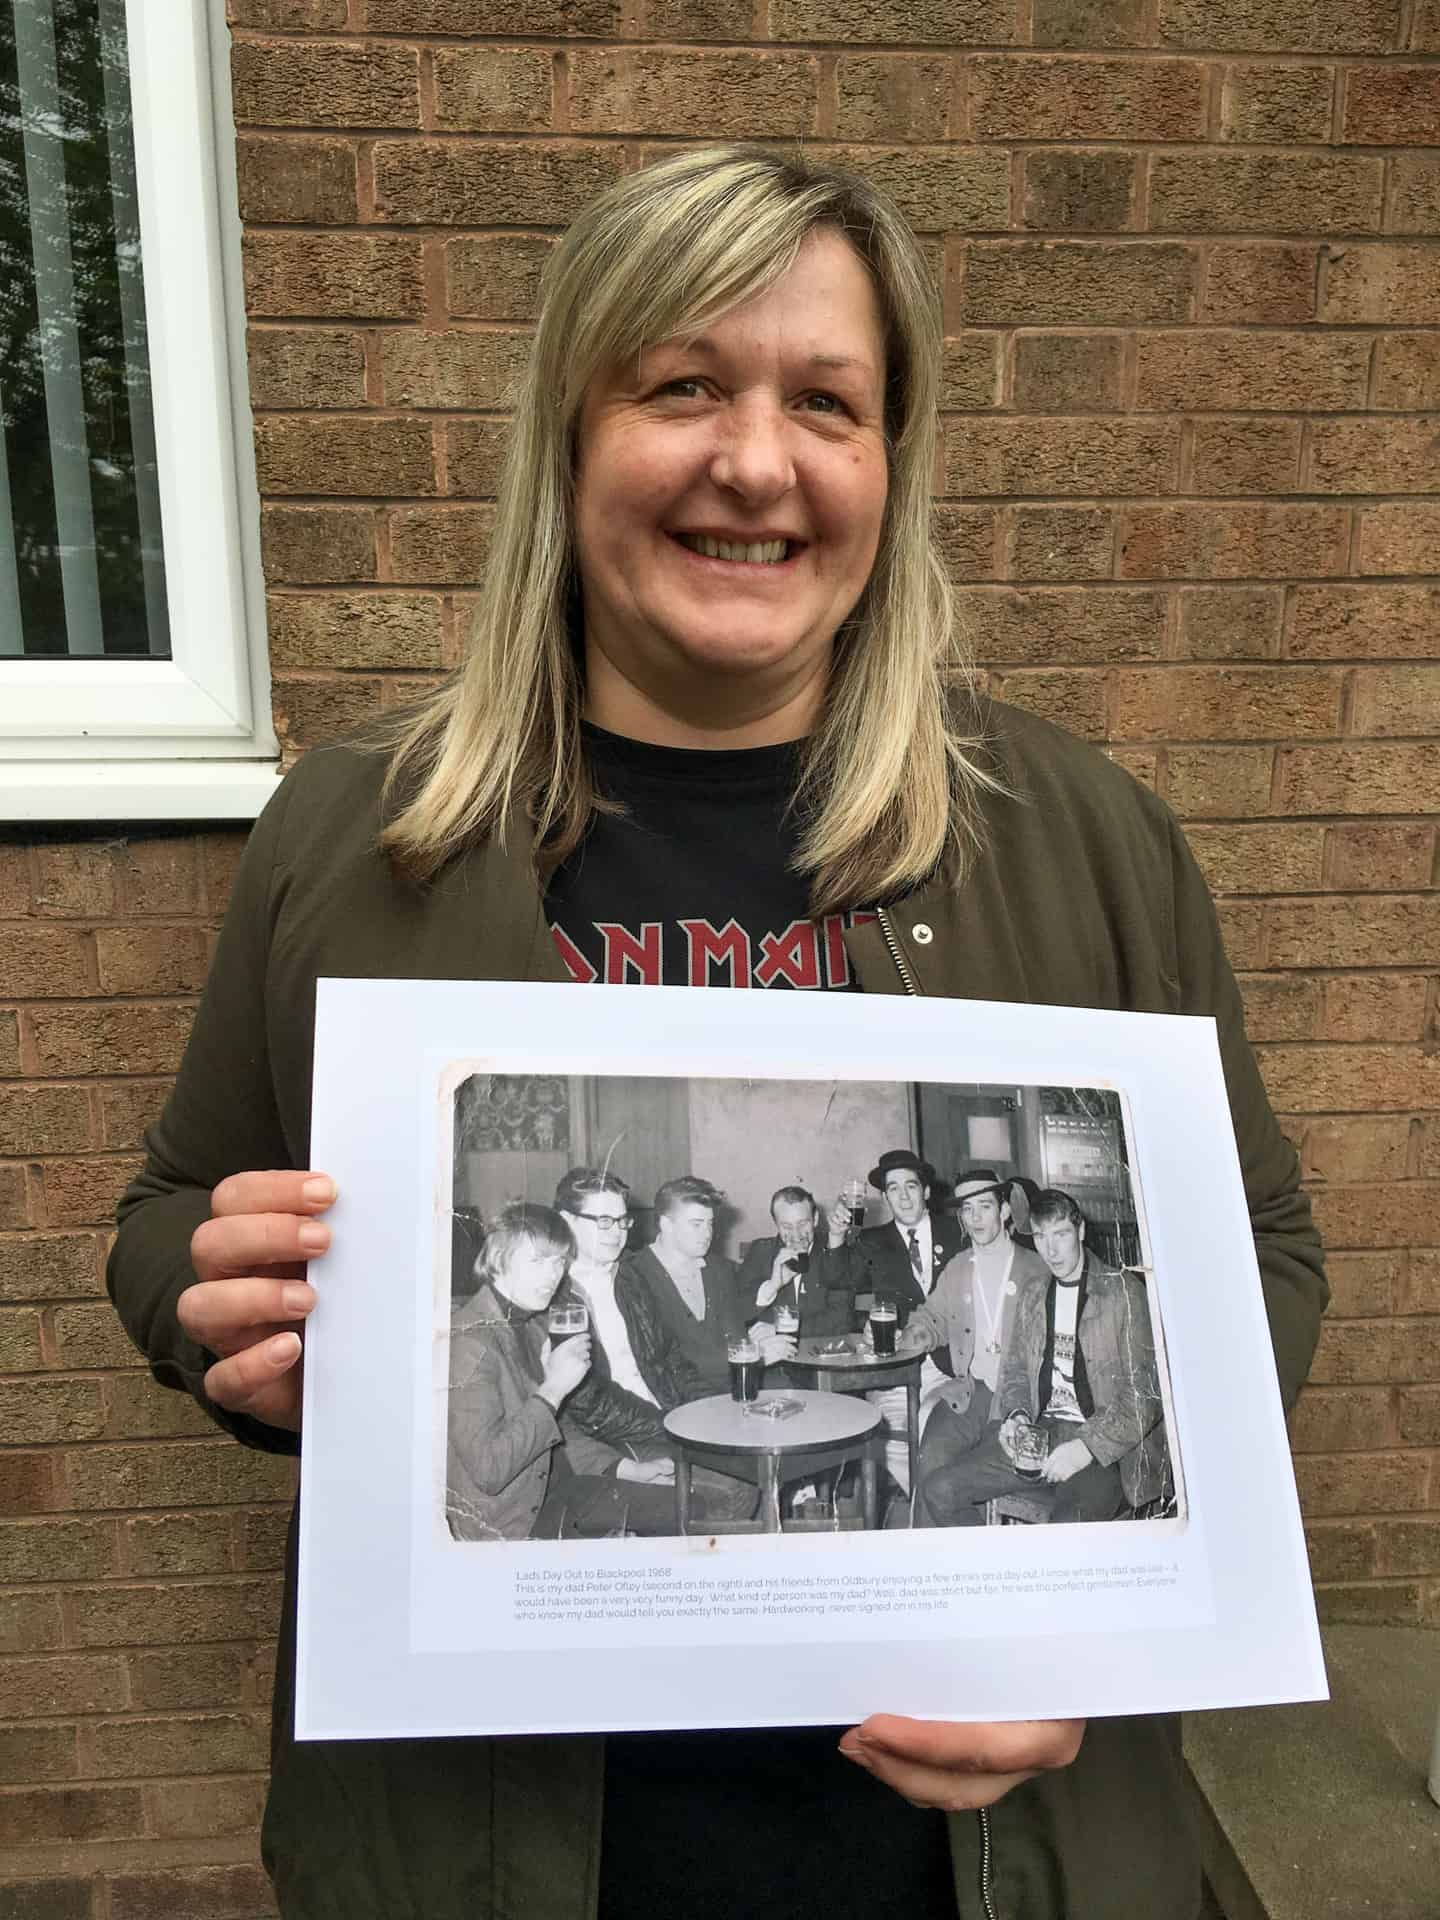 Sharon Ofley with a photo of her father and his friends from 1968